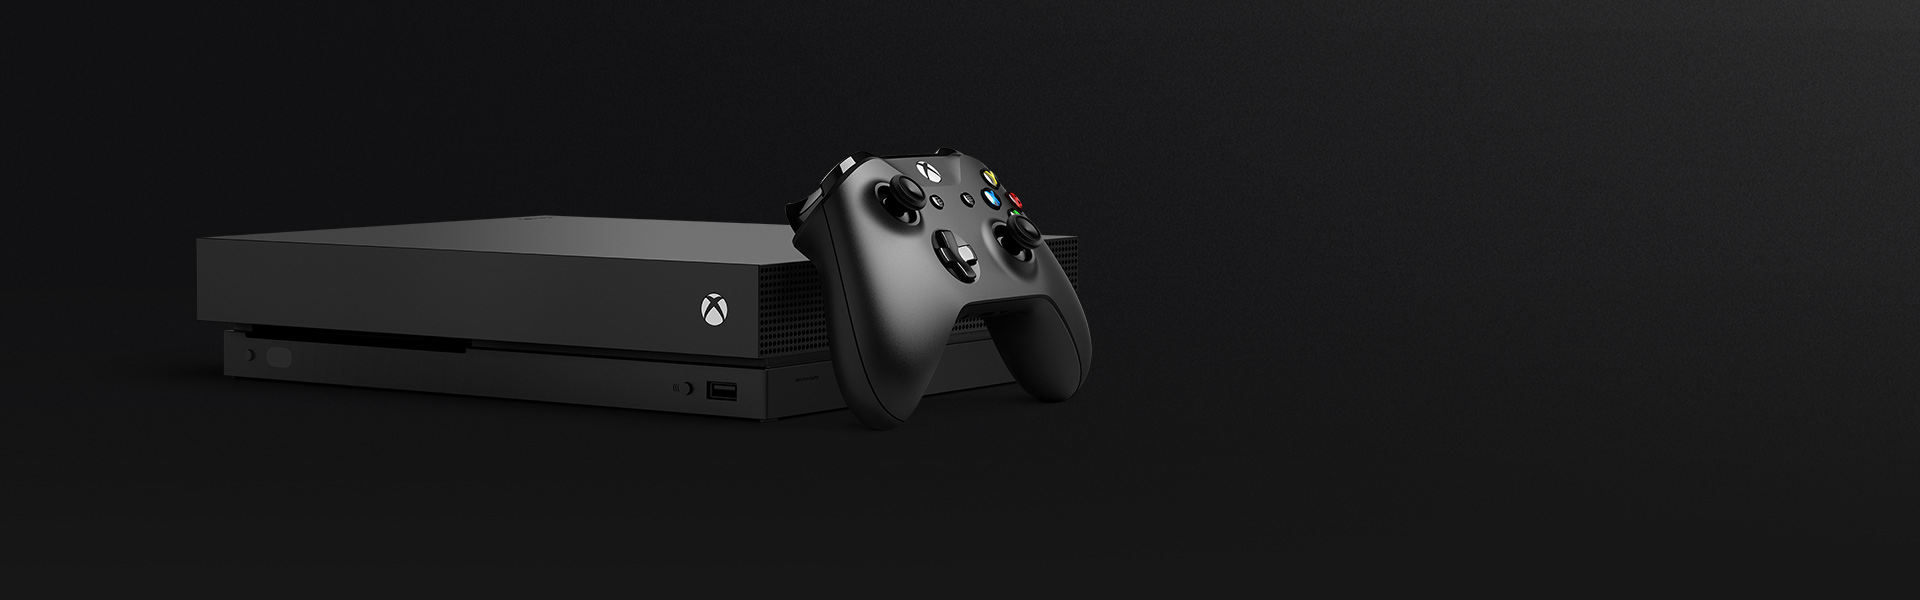 Black Xbox One X and controller